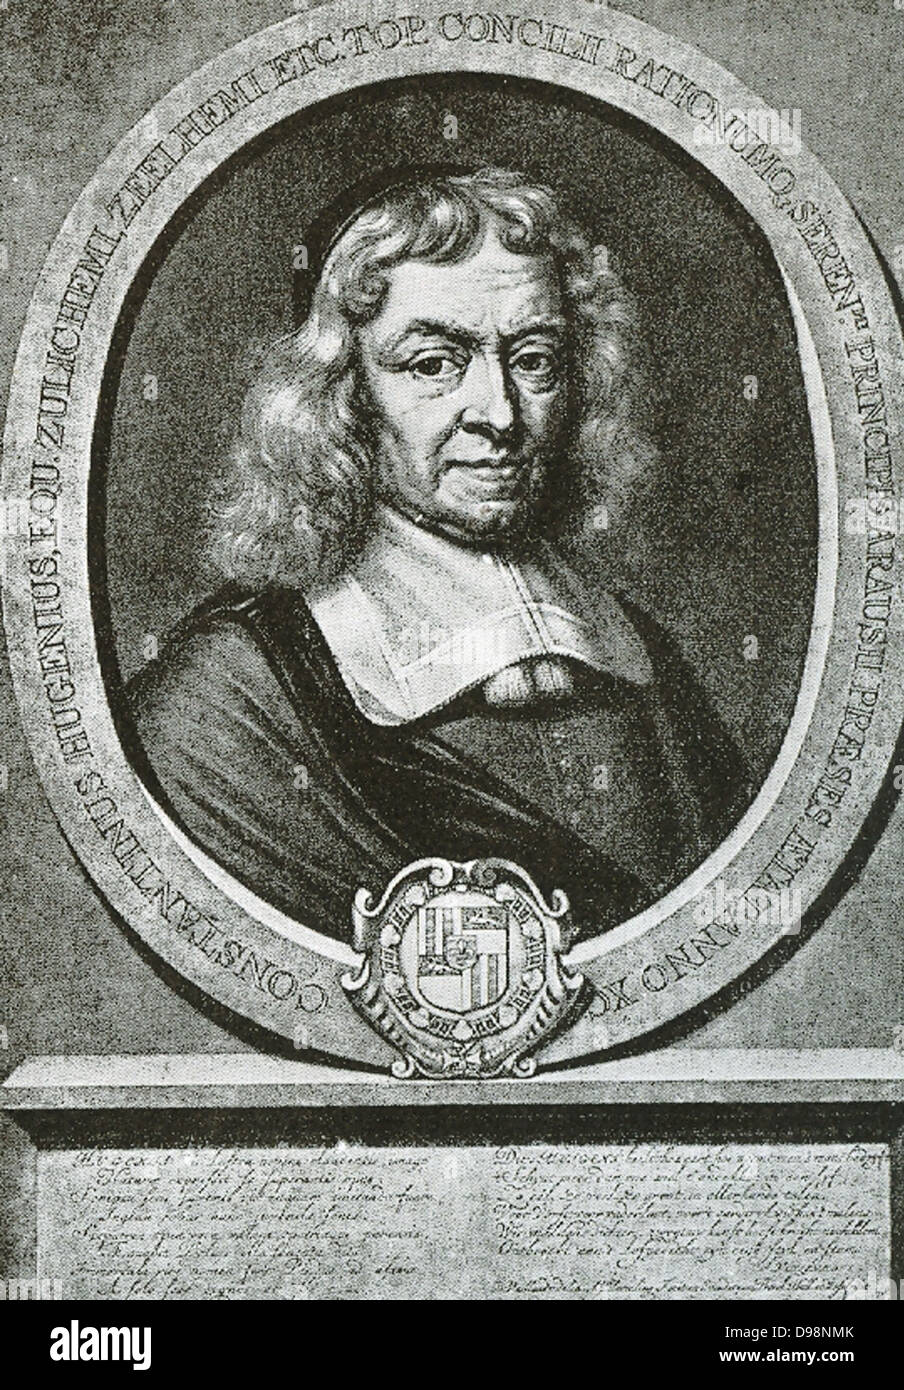 Constantijn Huygens (1596-1687) was a Dutch Golden Age poet and composer.  He was secretary to two Princes of Orange :